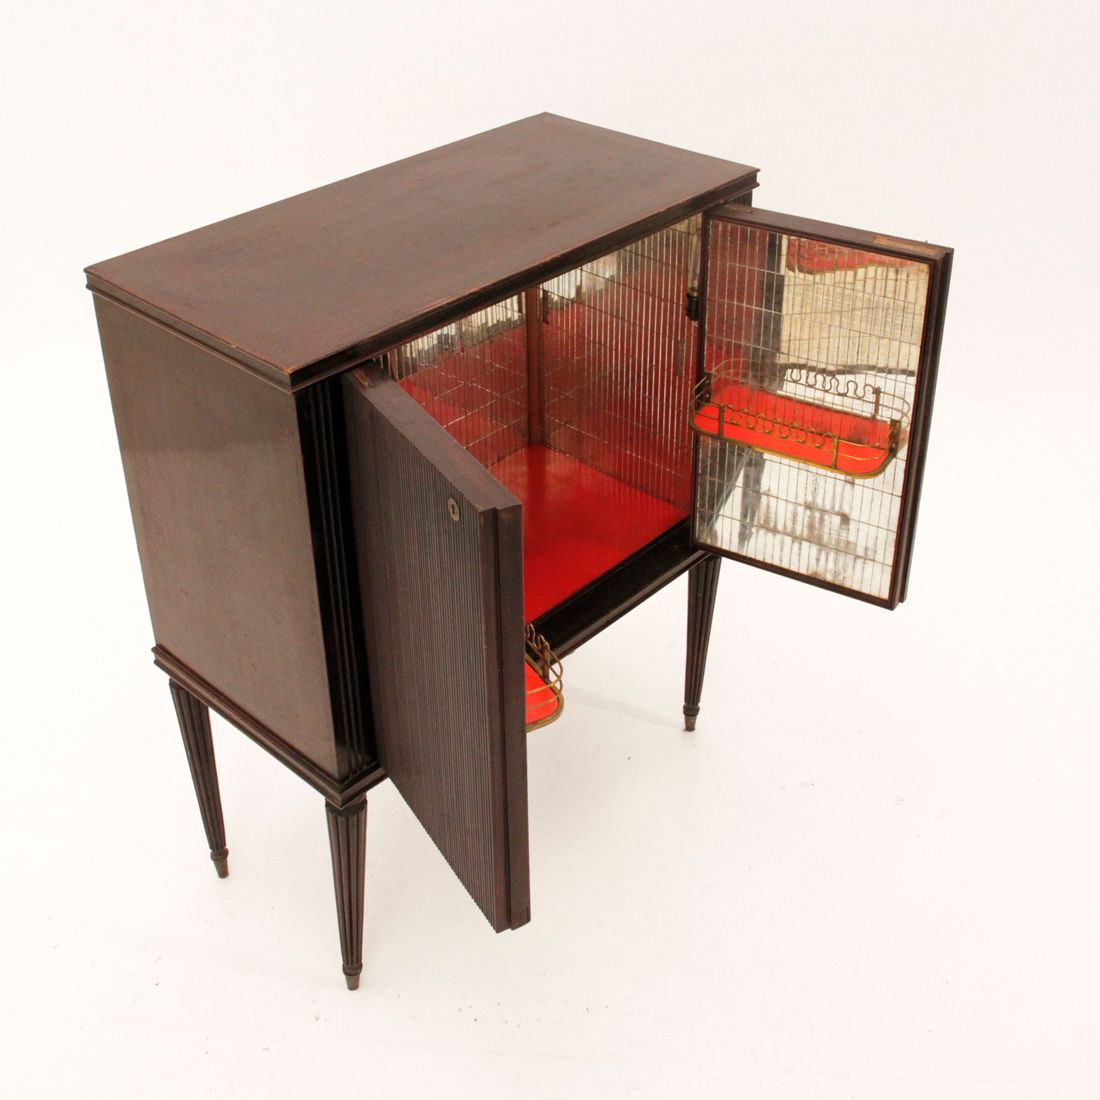 Damaged Kitchen Cabinets For Sale: Mid-Century Italian Bar Cabinet, 1940s For Sale At Pamono